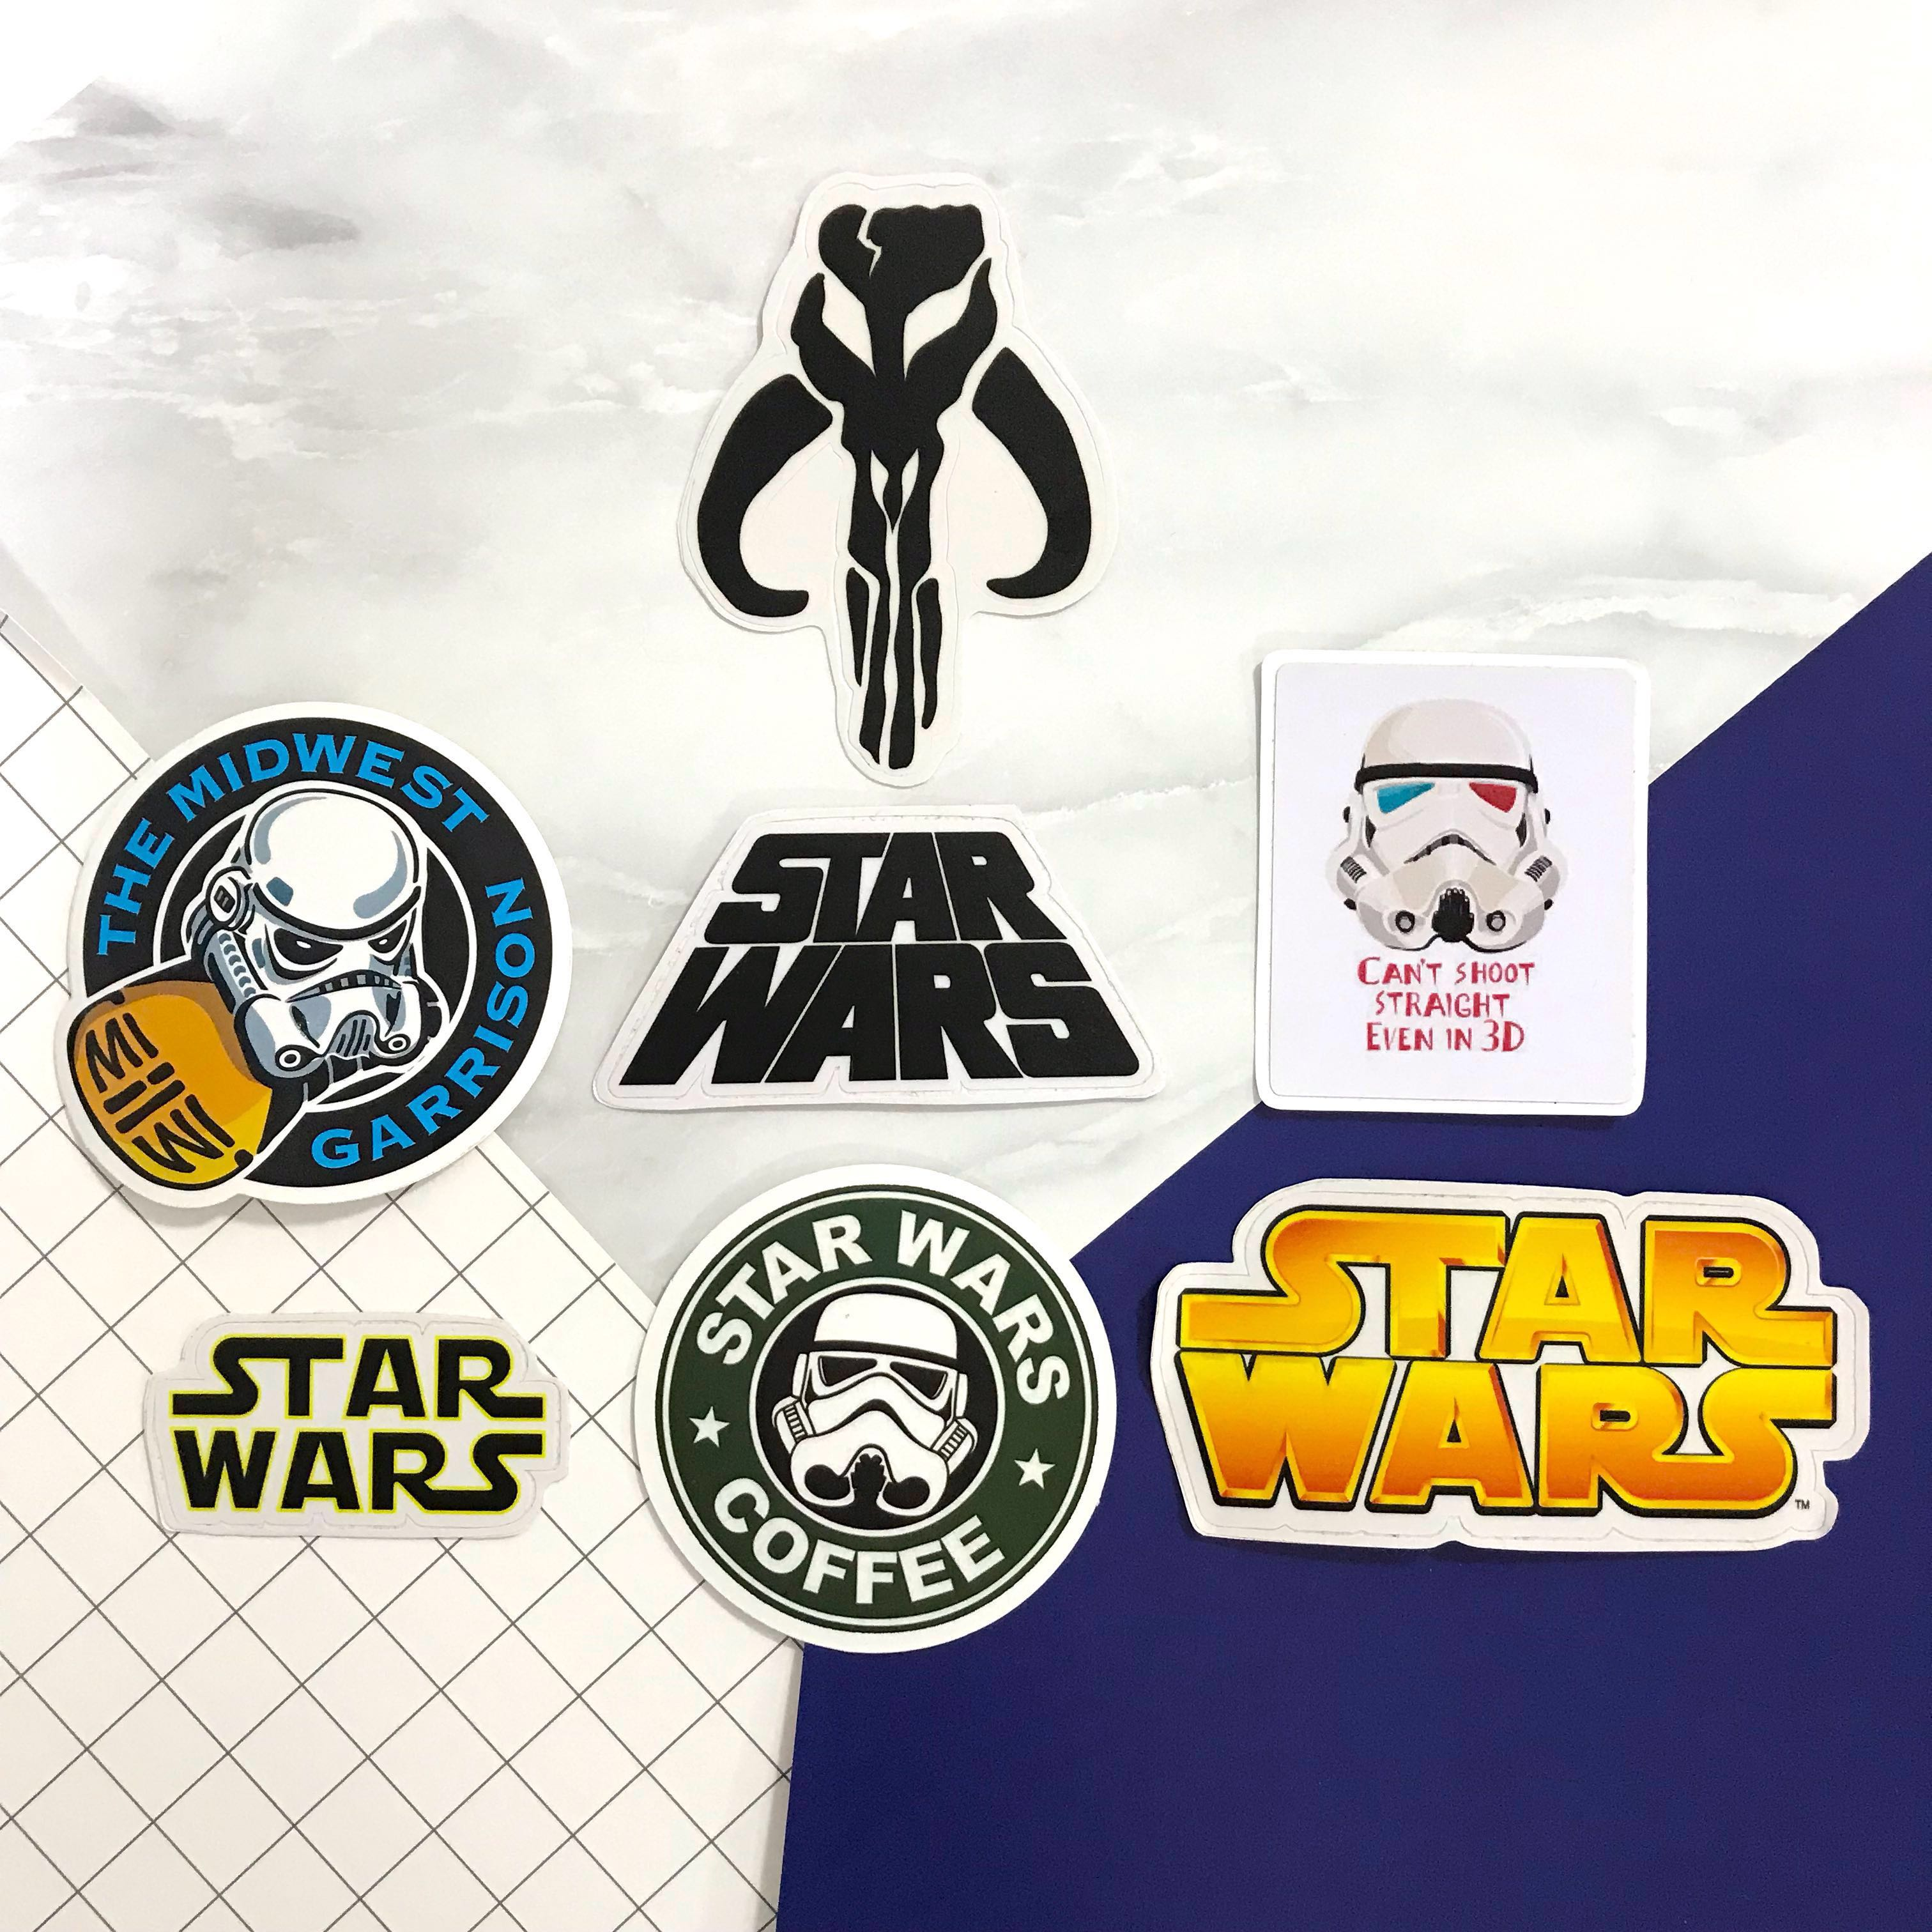 Star wars logo character sticker decal for luggage laptop phone wall decoration deco paste art pop culture design craft others on carousell